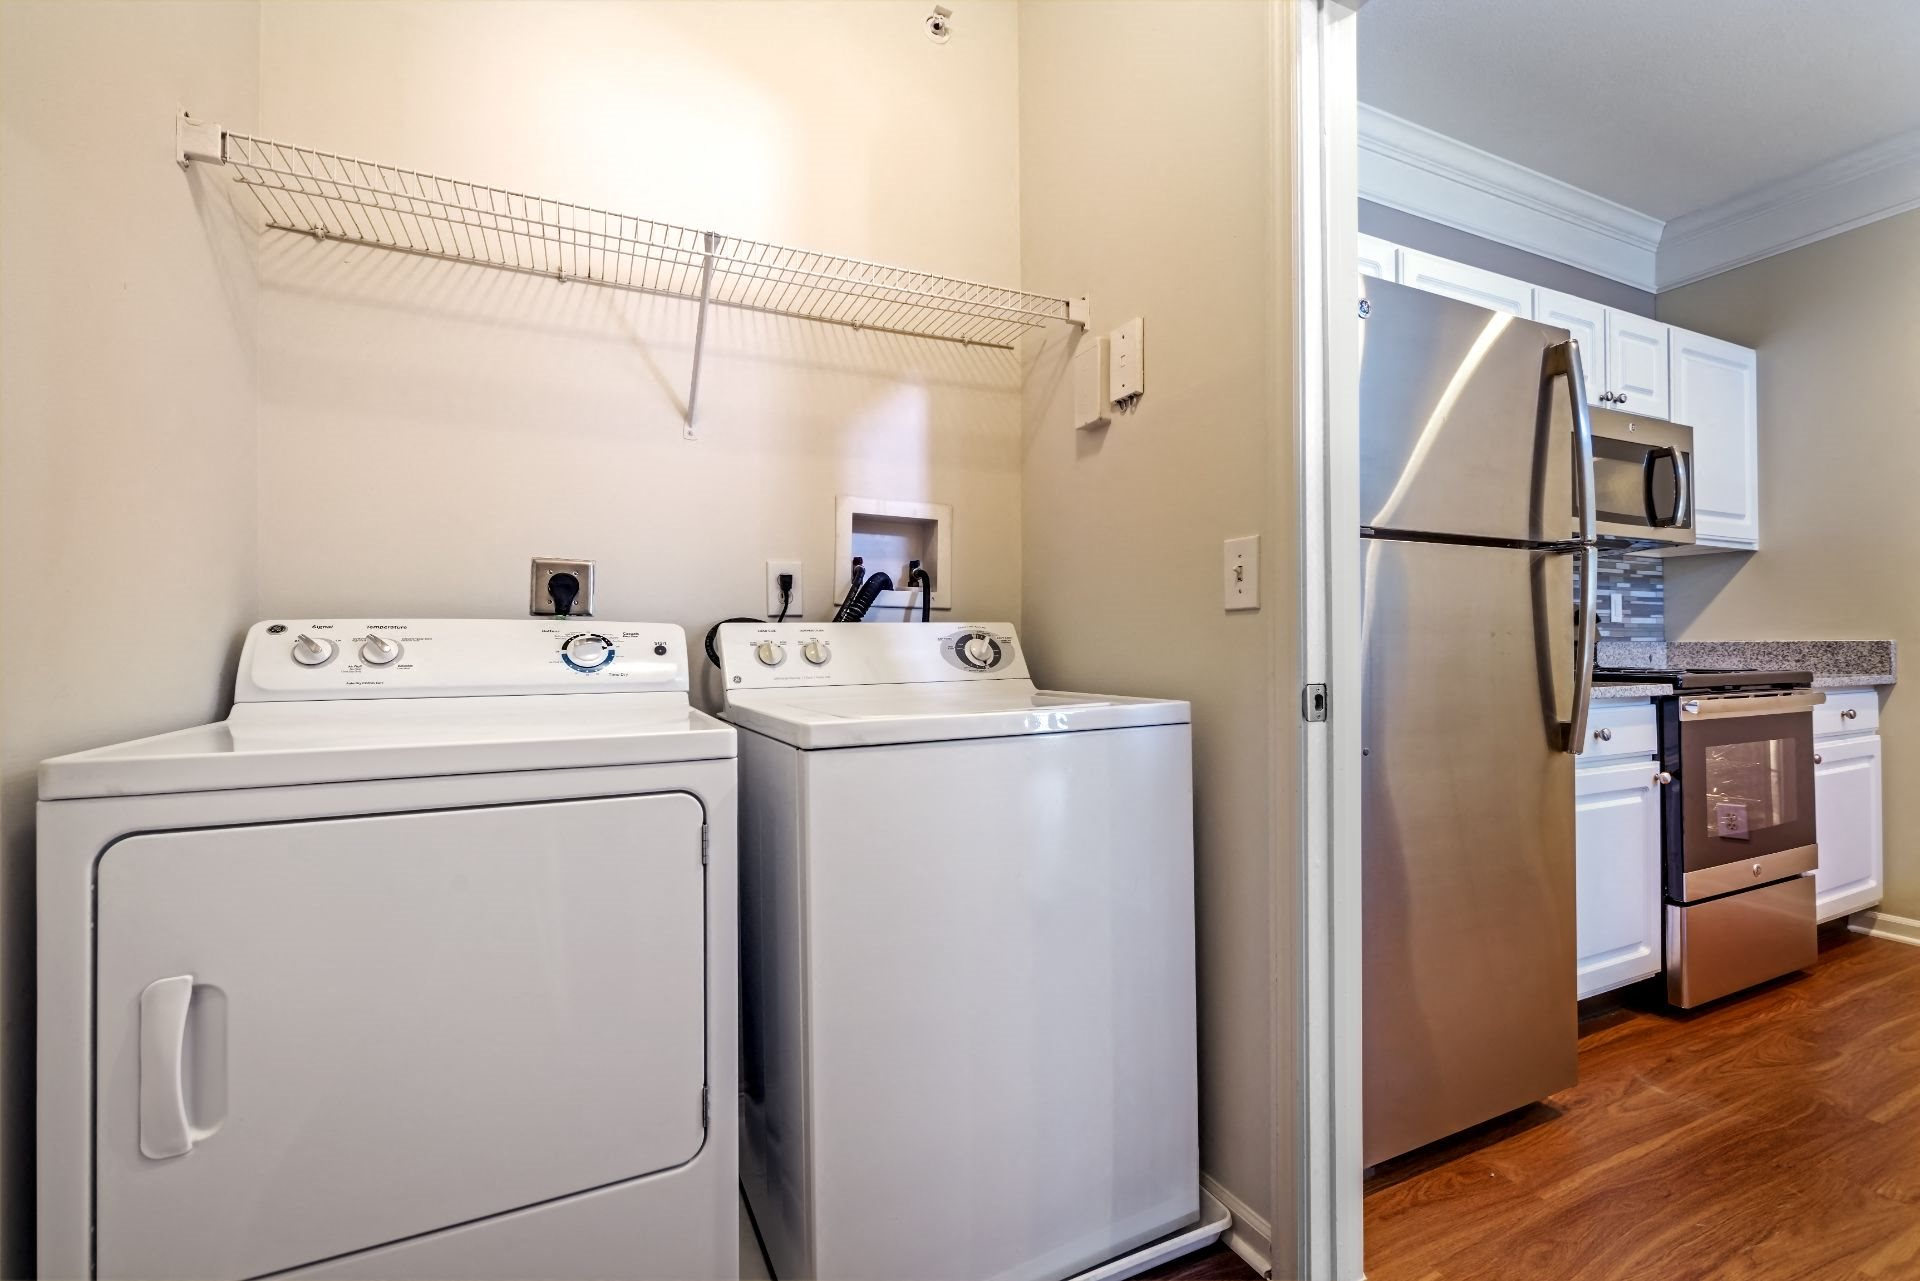 Christopher Wren Apartments with Washer Dryer, 501 Christopher Wren Drive, Wexford, PA 15090